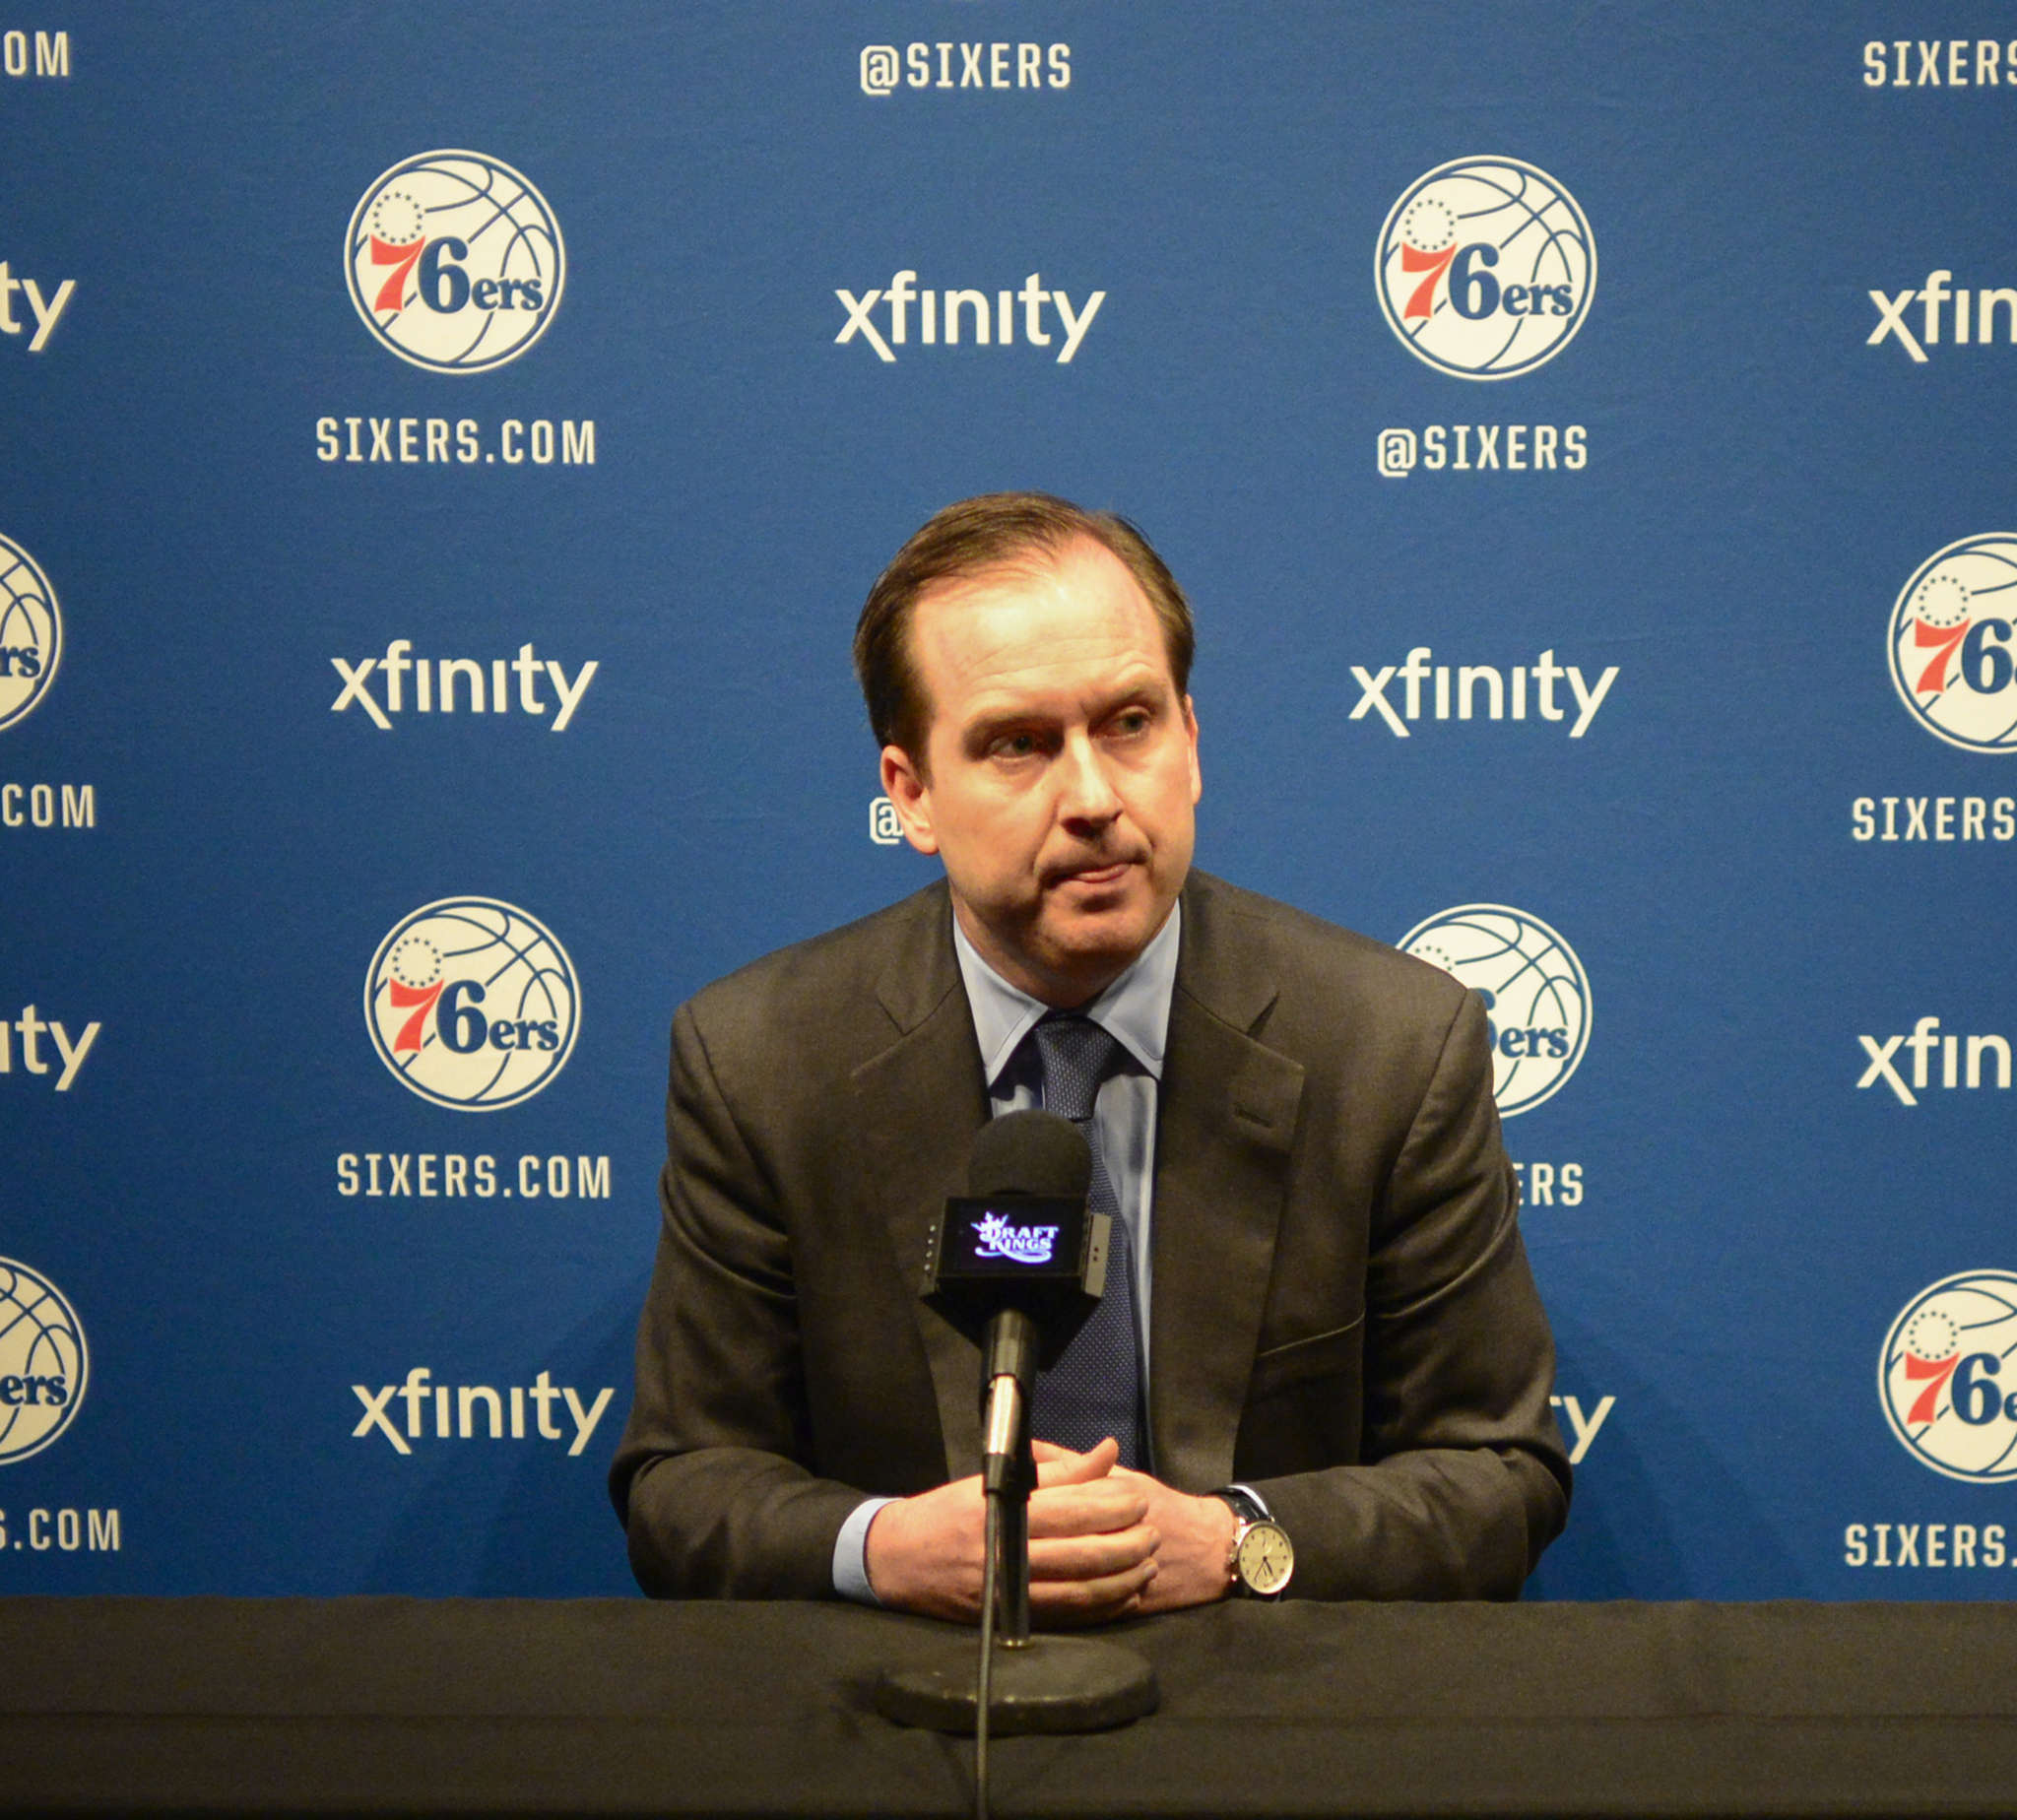 GM Sam Hinkie has stockpiled draft choices, but other moves have raised eyebrows around the league.